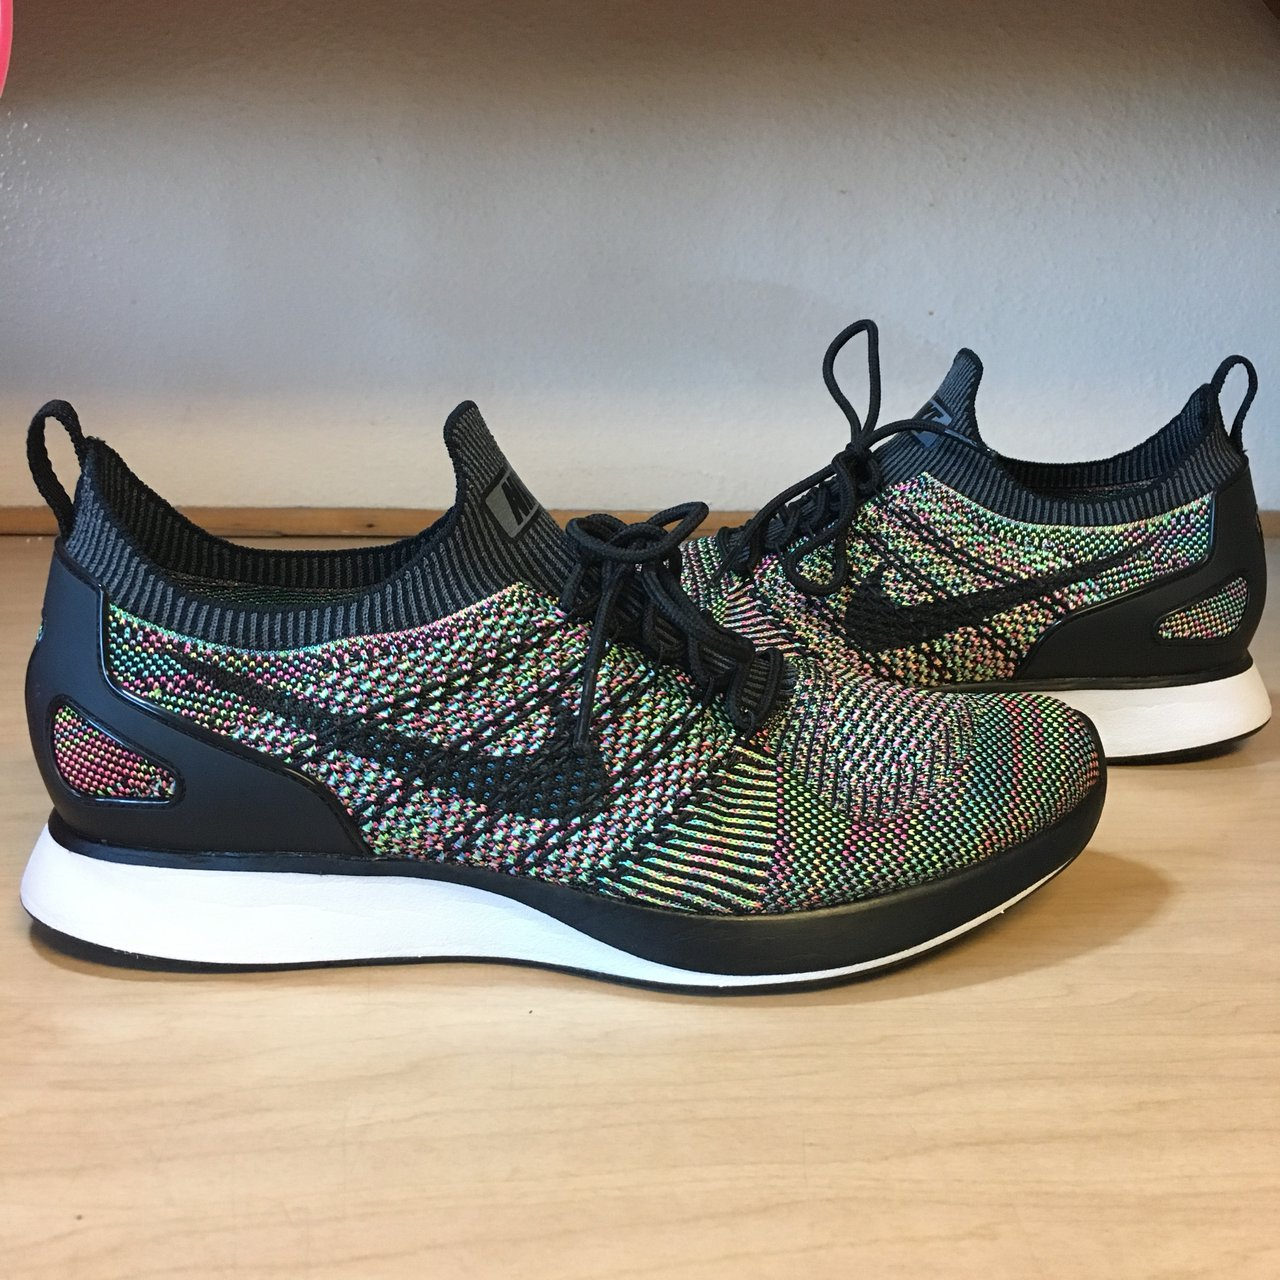 6209688c619c0 Nike Air Zoom Mariah Flyknit Racer  Multicolor  Worn once. - Depop